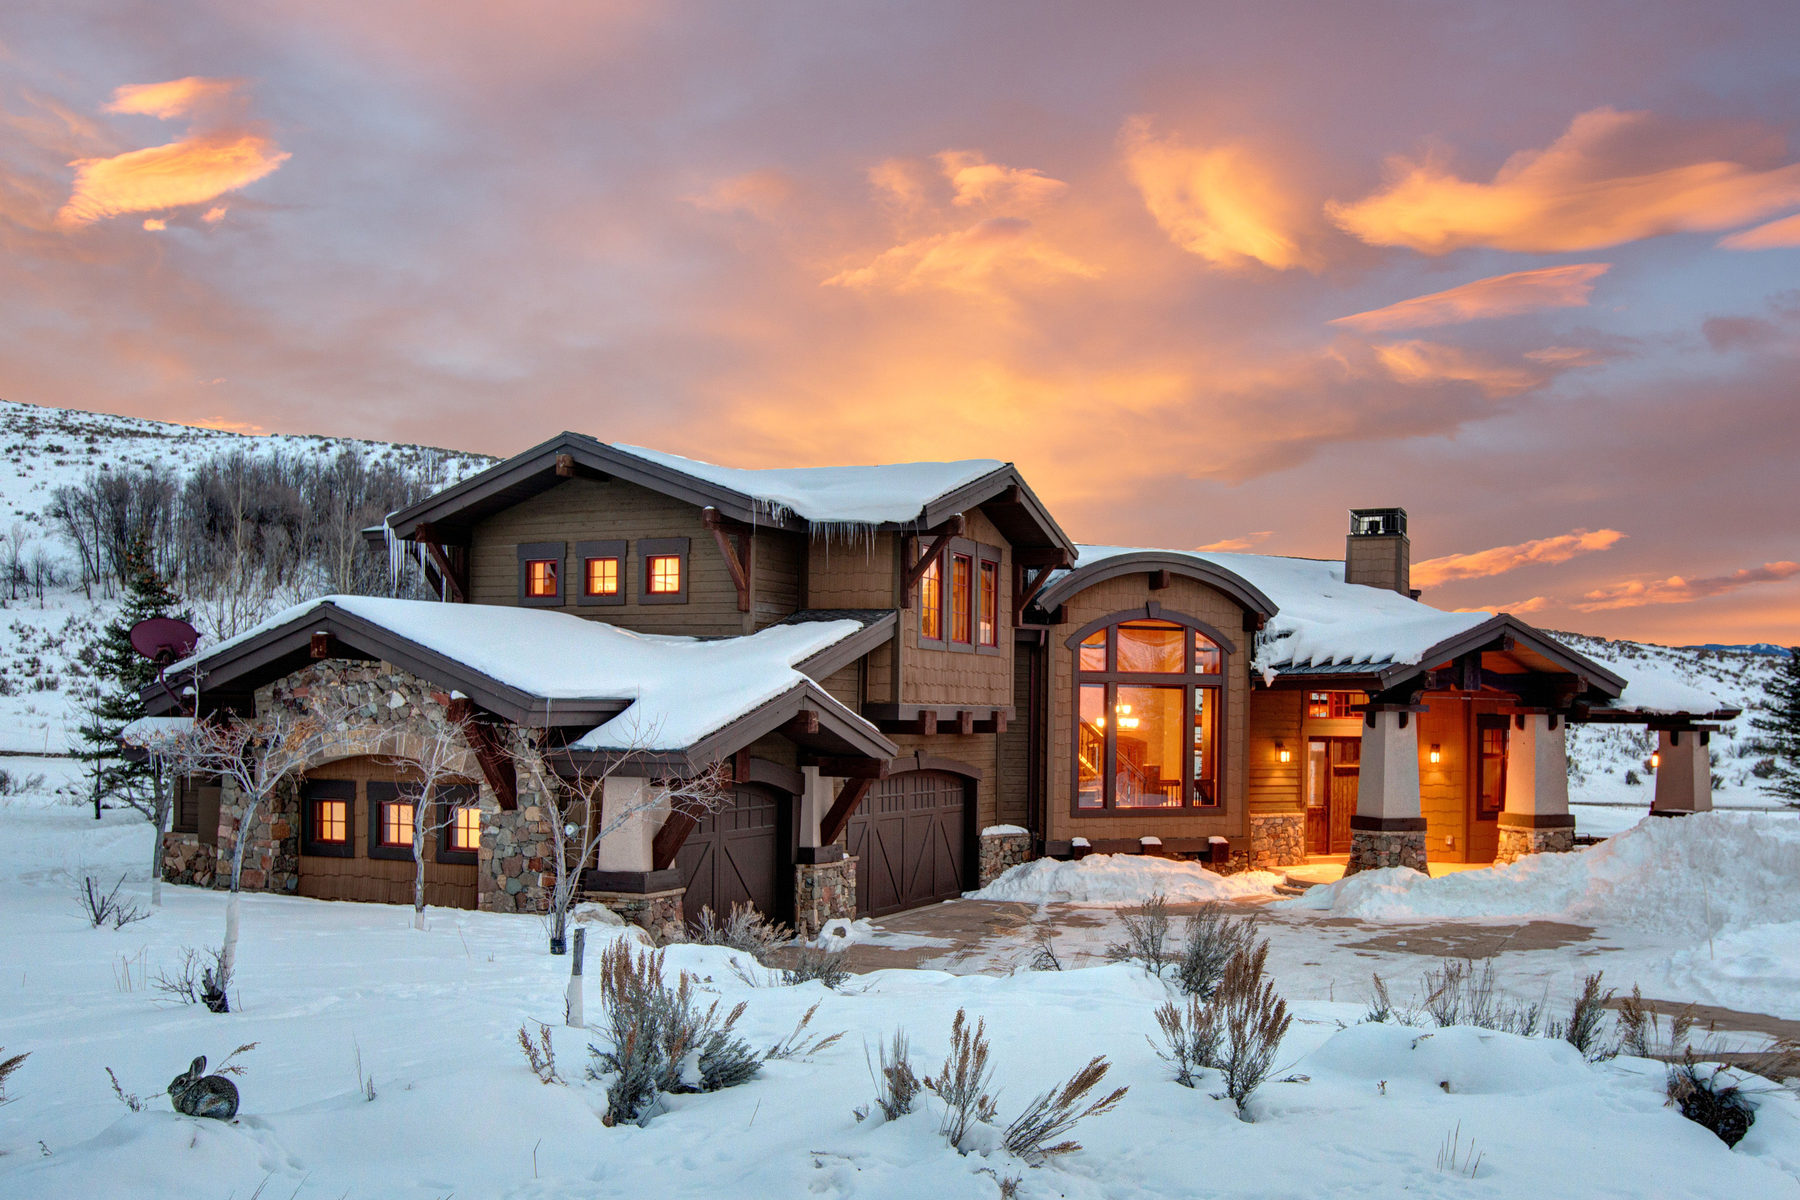 Single Family Home for Sale at Best Value and Upwall Designed Home 7076 Juniper Draw Park City, Utah 84098 United States